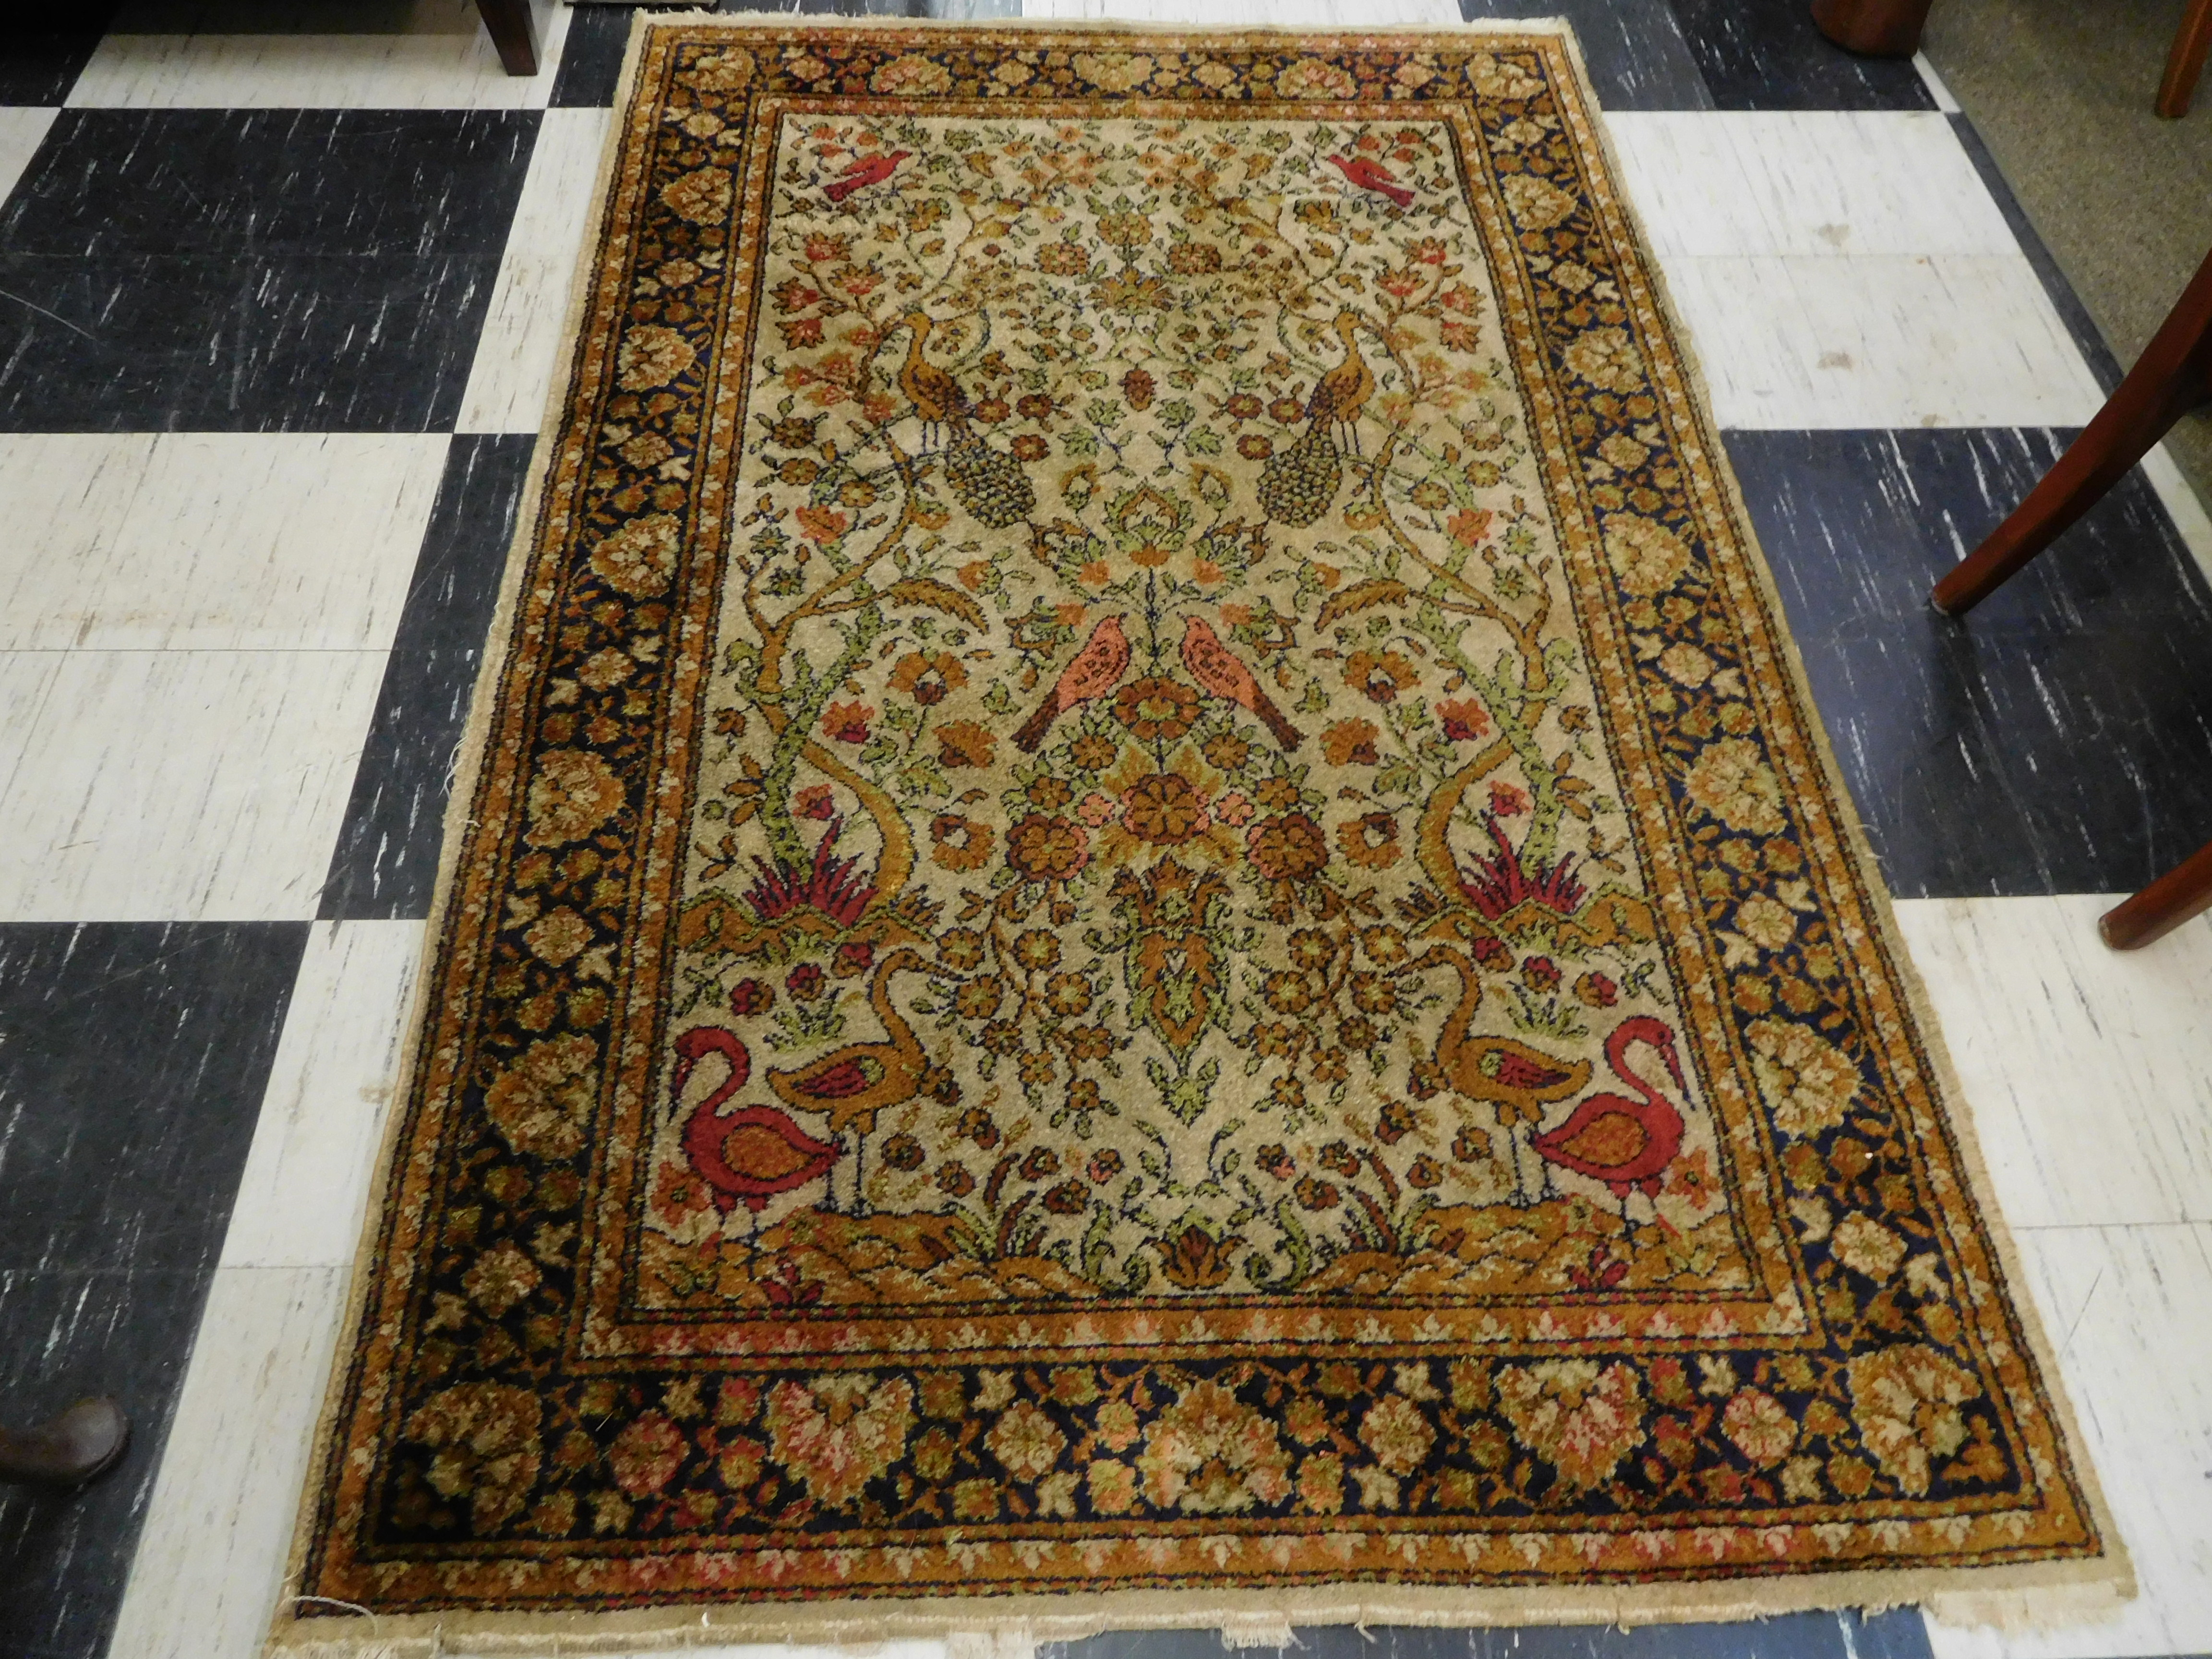 Vintage Hand Knotted Rug with